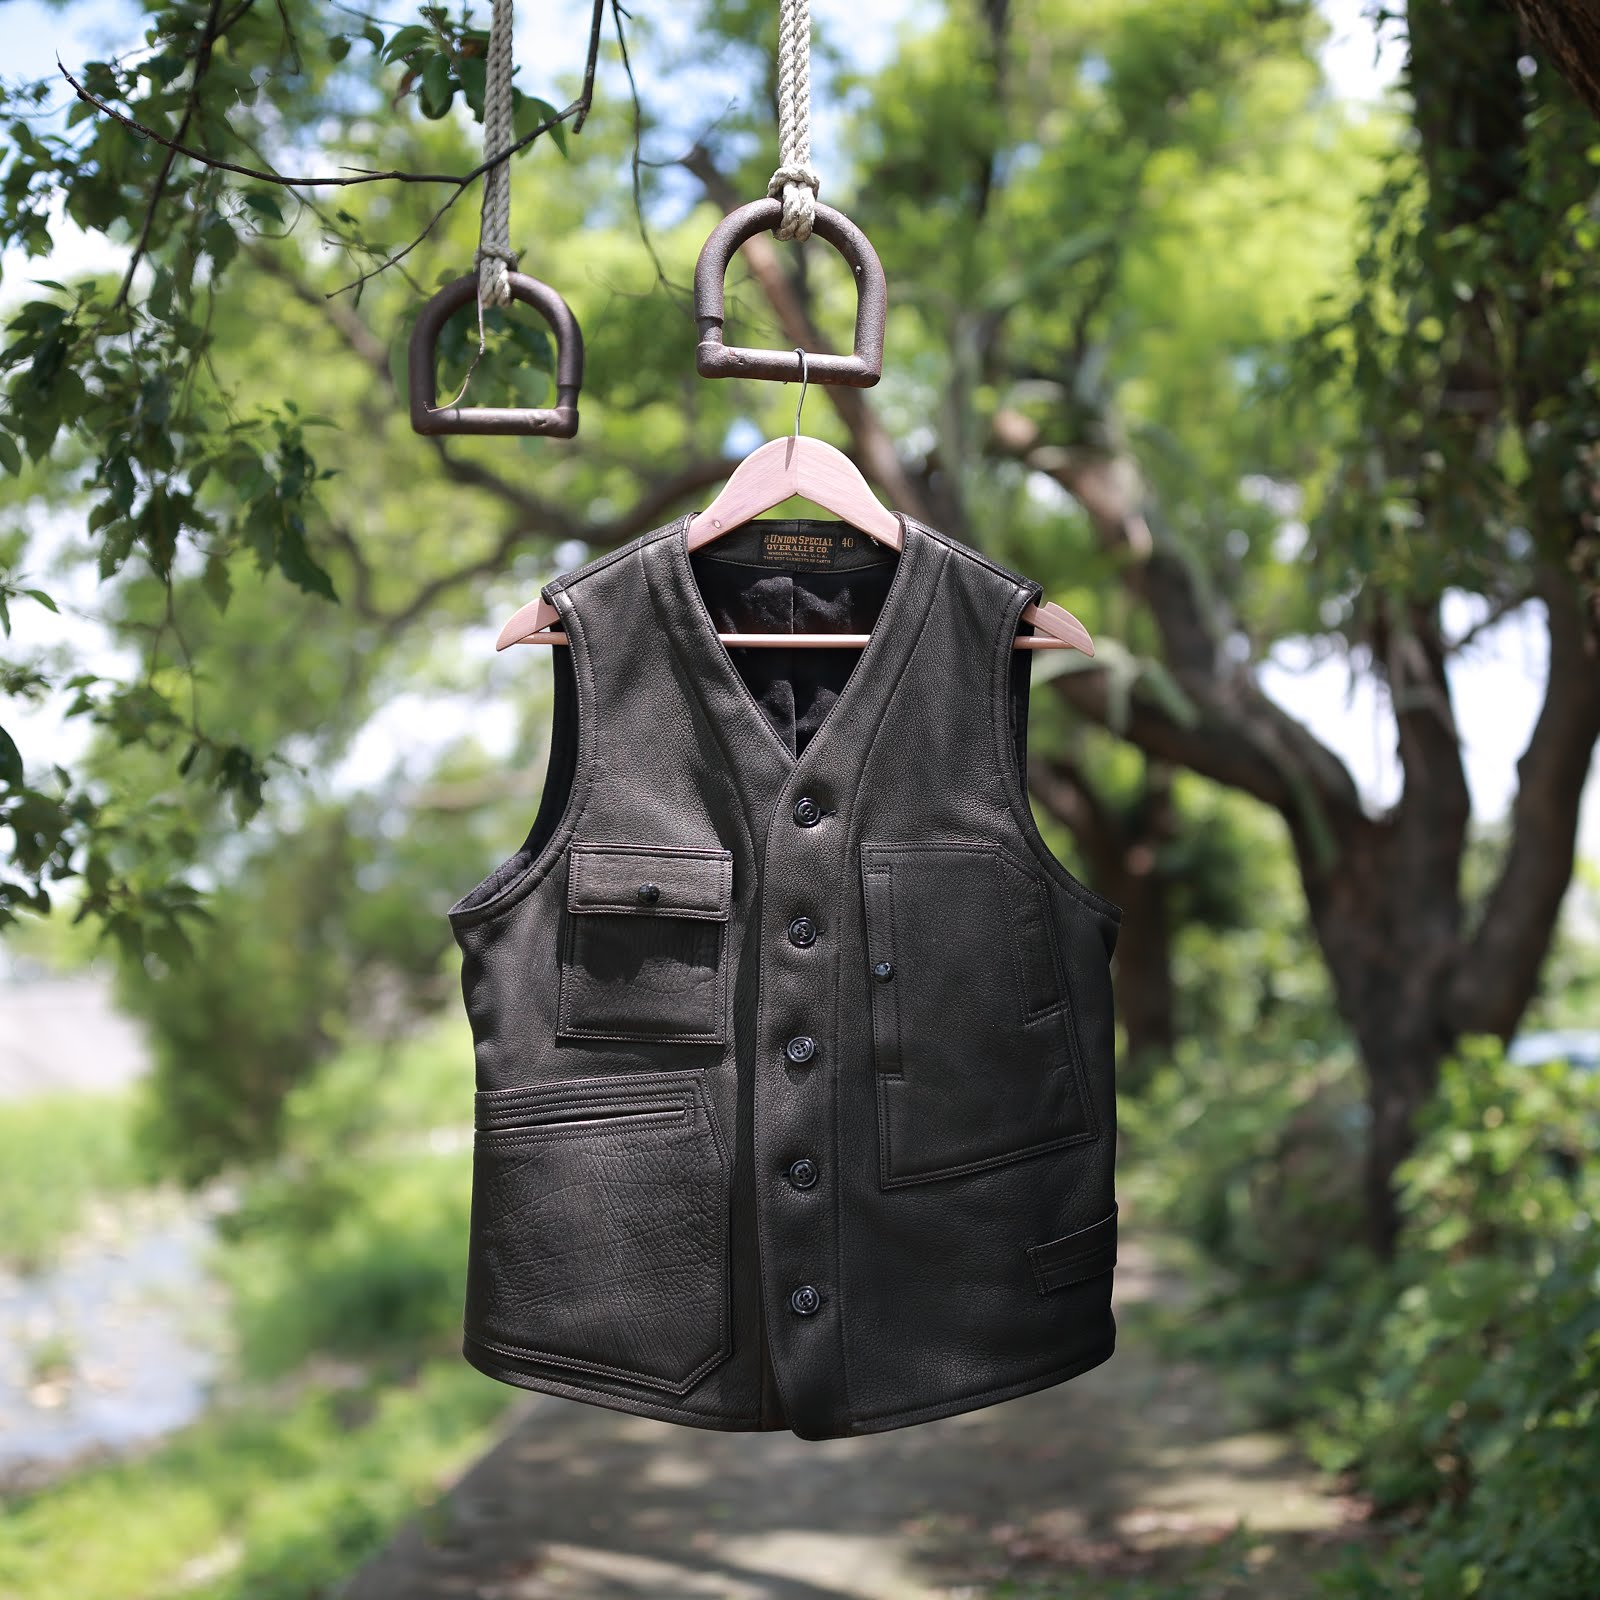 Outdoor style and workwear: [極致背心] Freewheelers